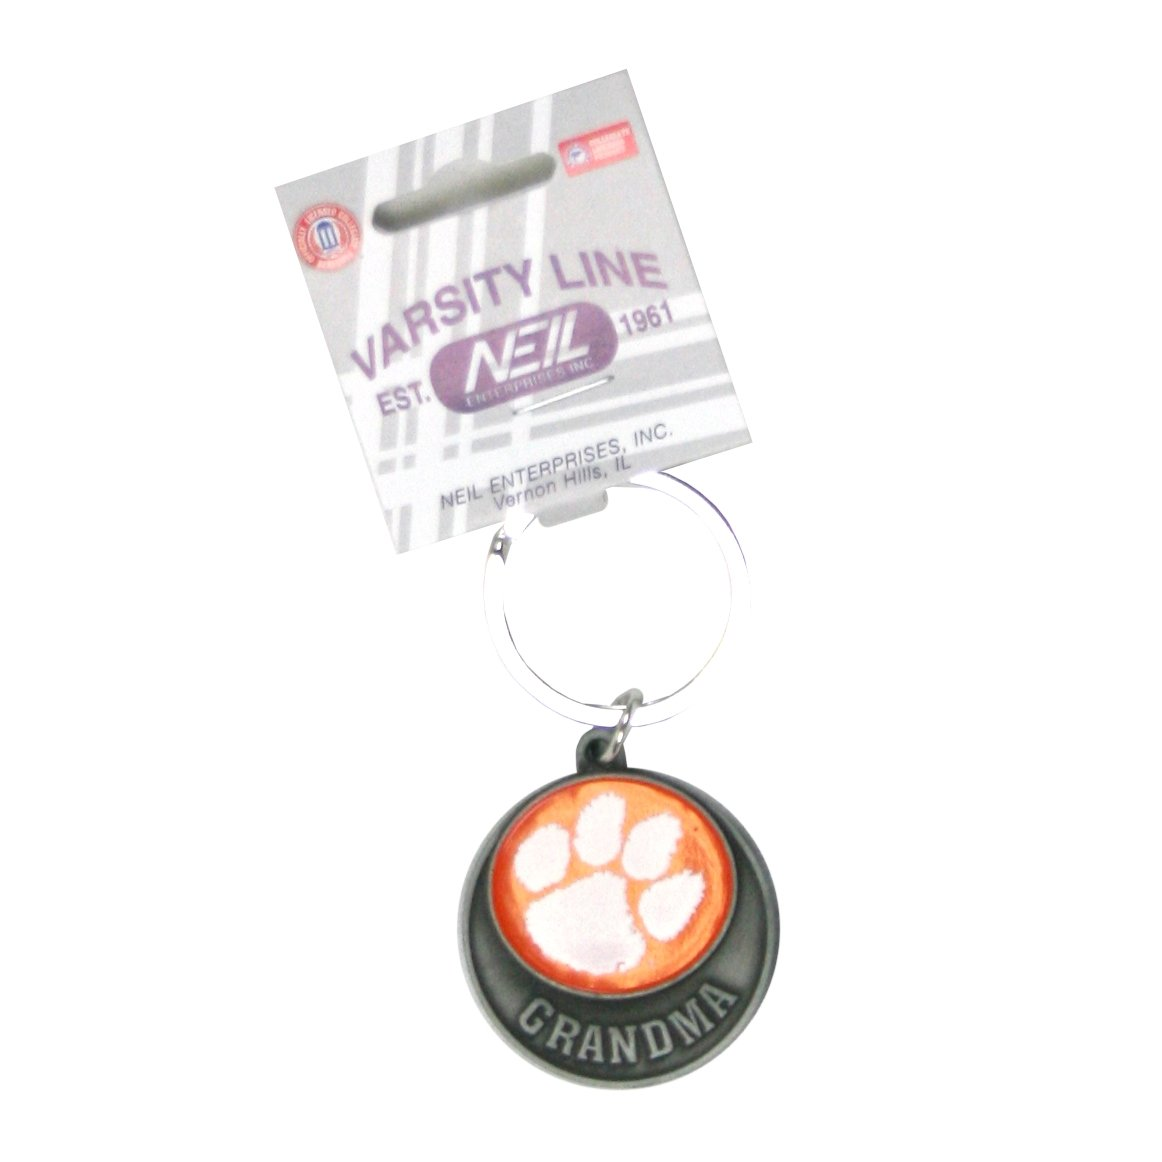 Grandma Keytag Orange Disc With Paw - Mr. Knickerbocker